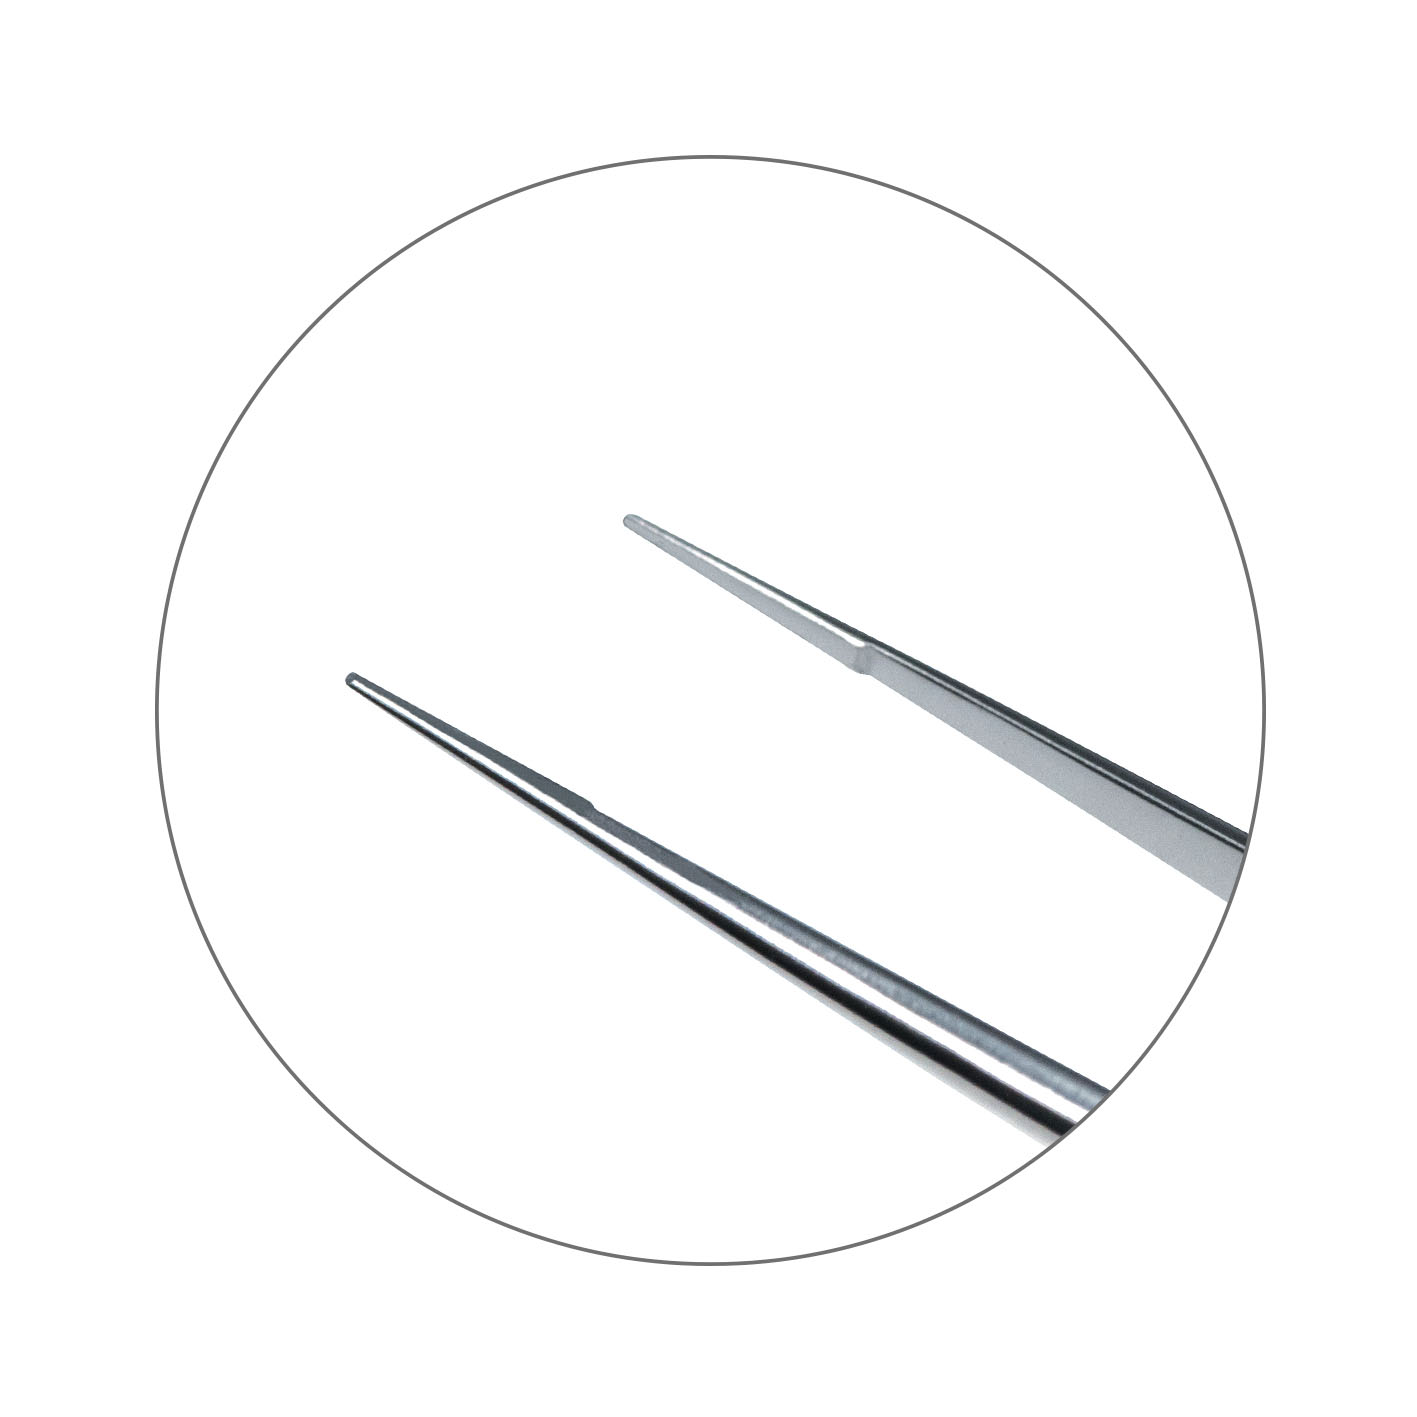 EN-1000 Stainless Steel Tympanoplasty Forceps